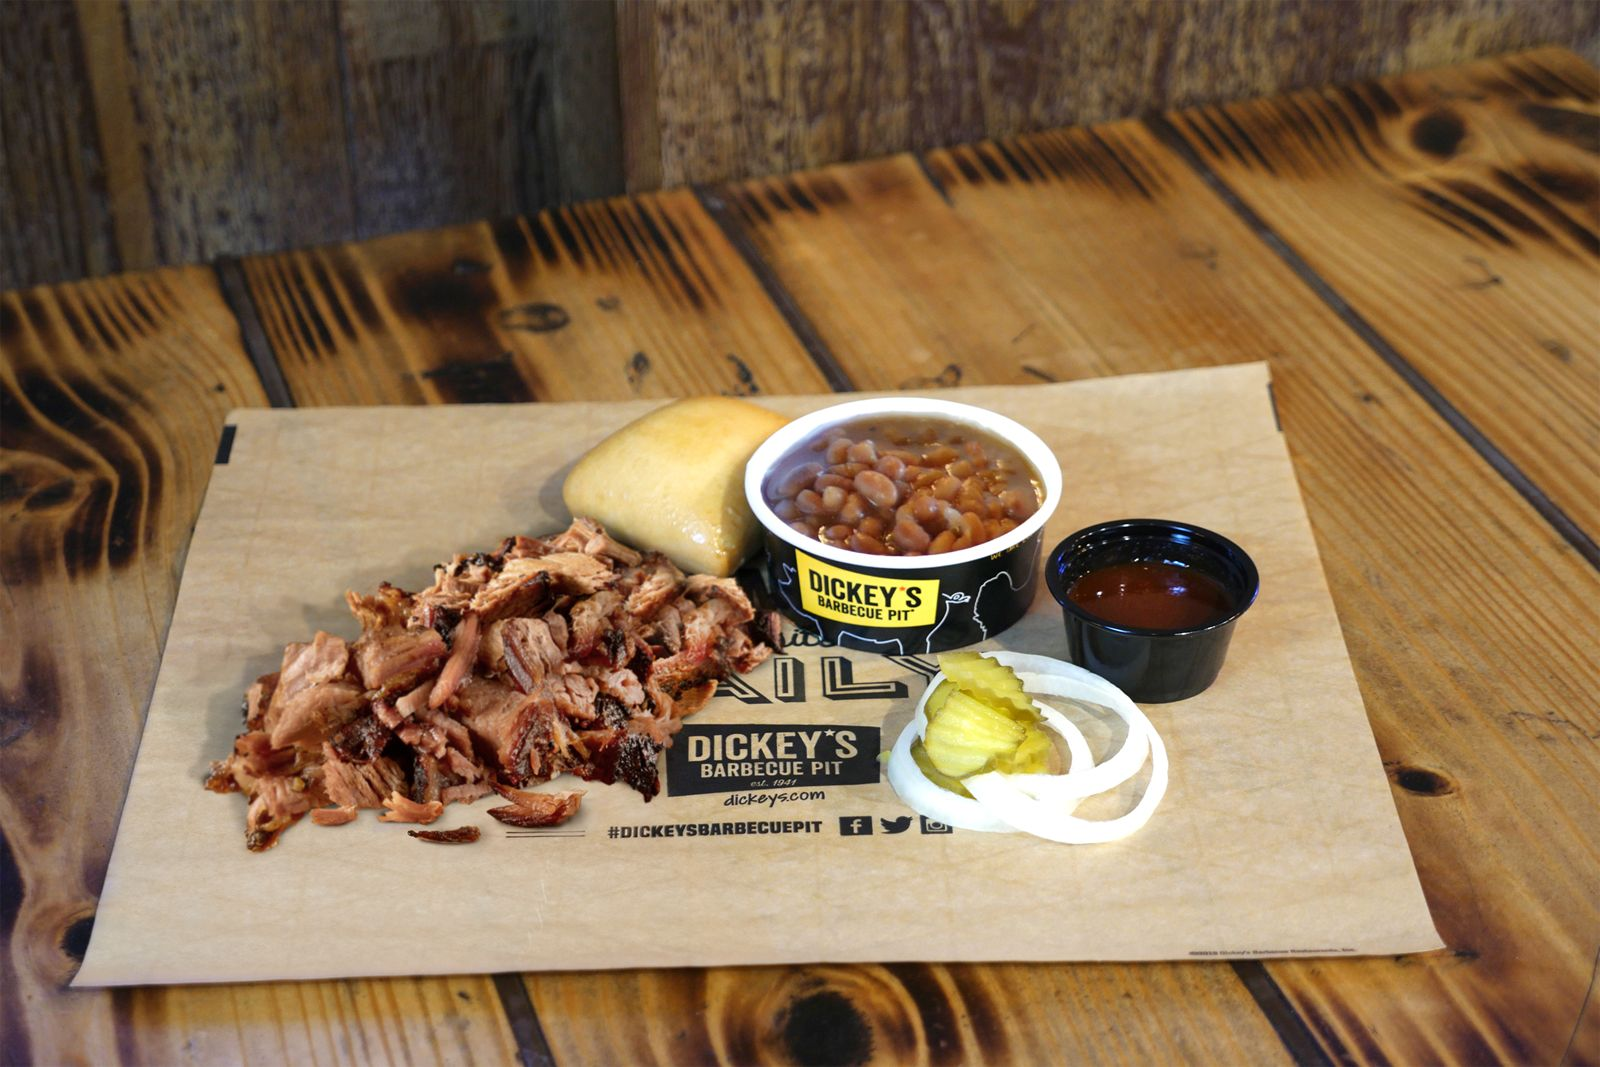 Dickey's Barbecue Pit award-winning chopped brisket